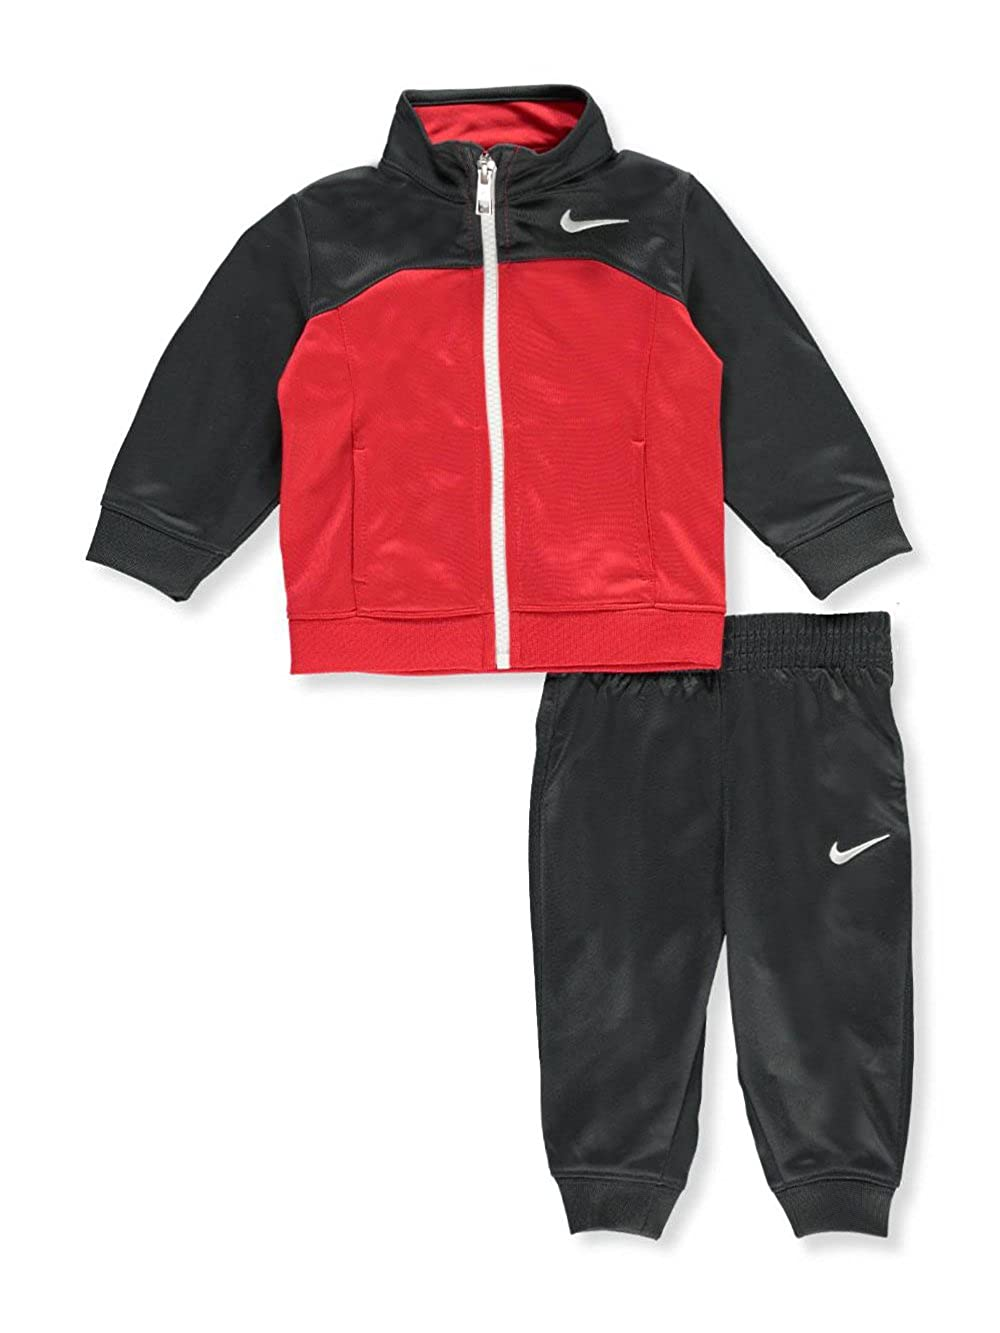 a15422e18 Amazon.com: NIKE Baby Boys' 2-Piece Tricot Tracksuit - Anthracite, 6-9  Months: Sports & Outdoors